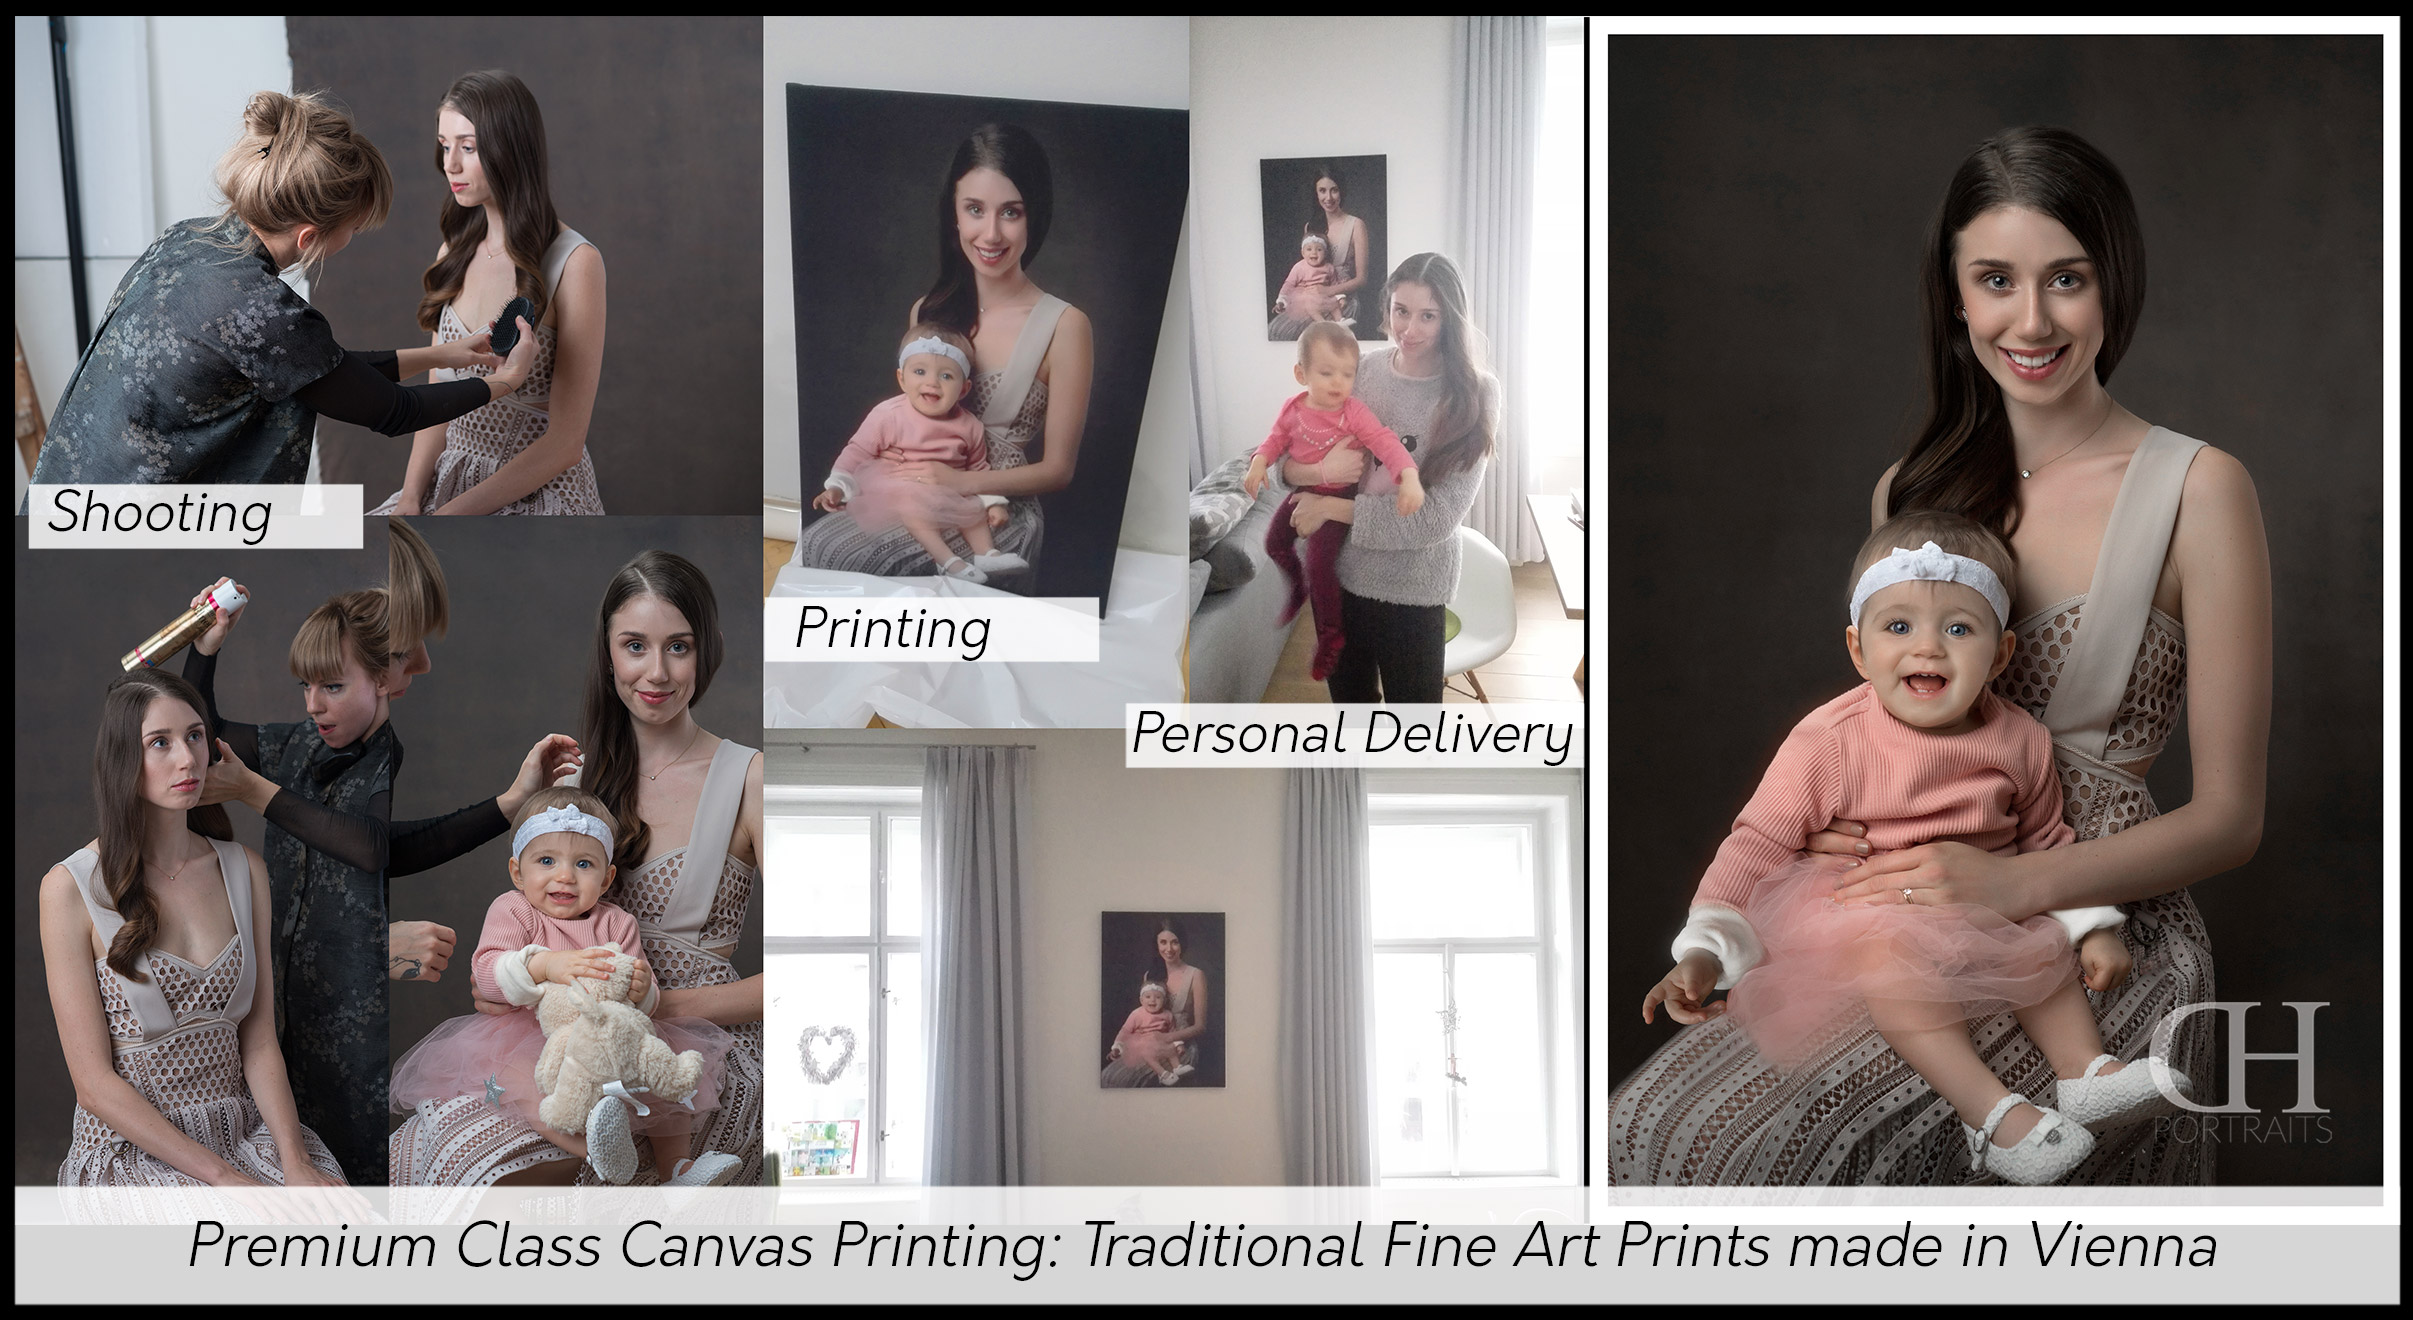 Premium-Class-Canvas-Printing--Exquisite-Fine-Art-Prints-from-Vienna---Dan-Hostettler-Portraits